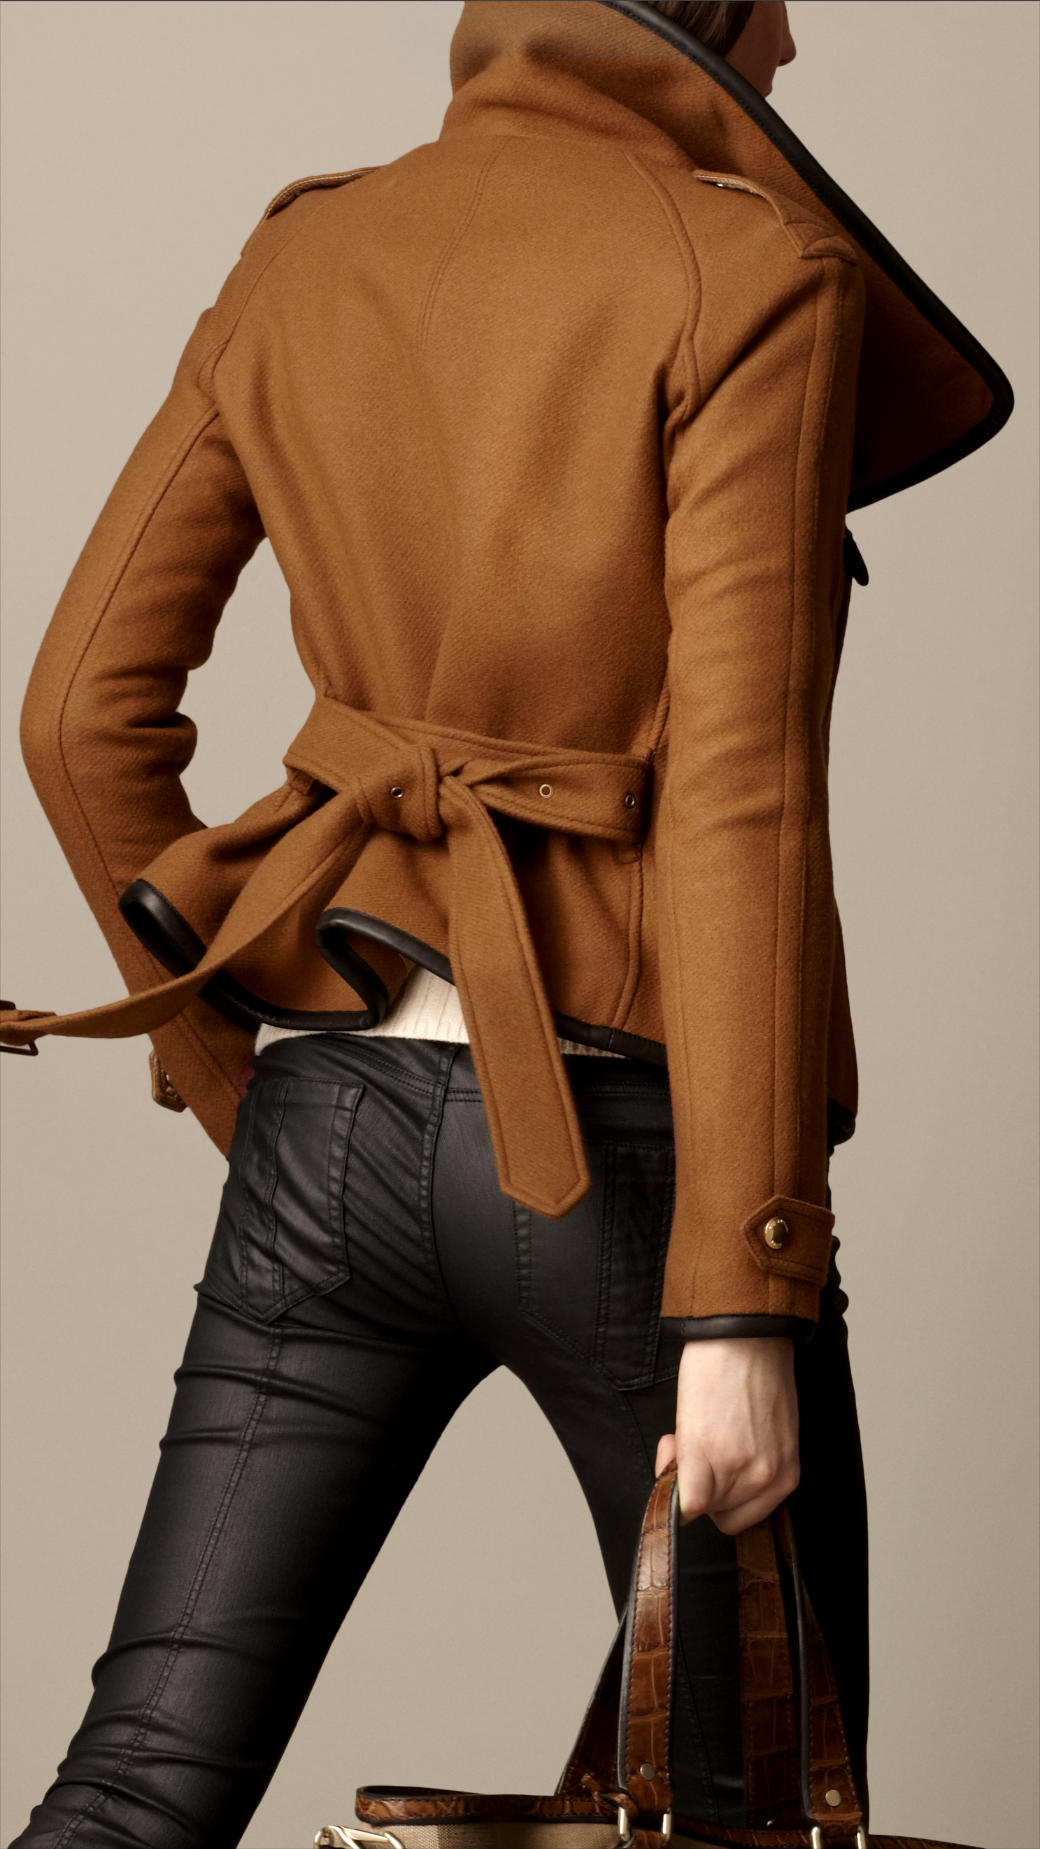 Lyst - Burberry Leather Trim Blanket Wrap Jacket in Brown : burberry quilted check trim coat - Adamdwight.com